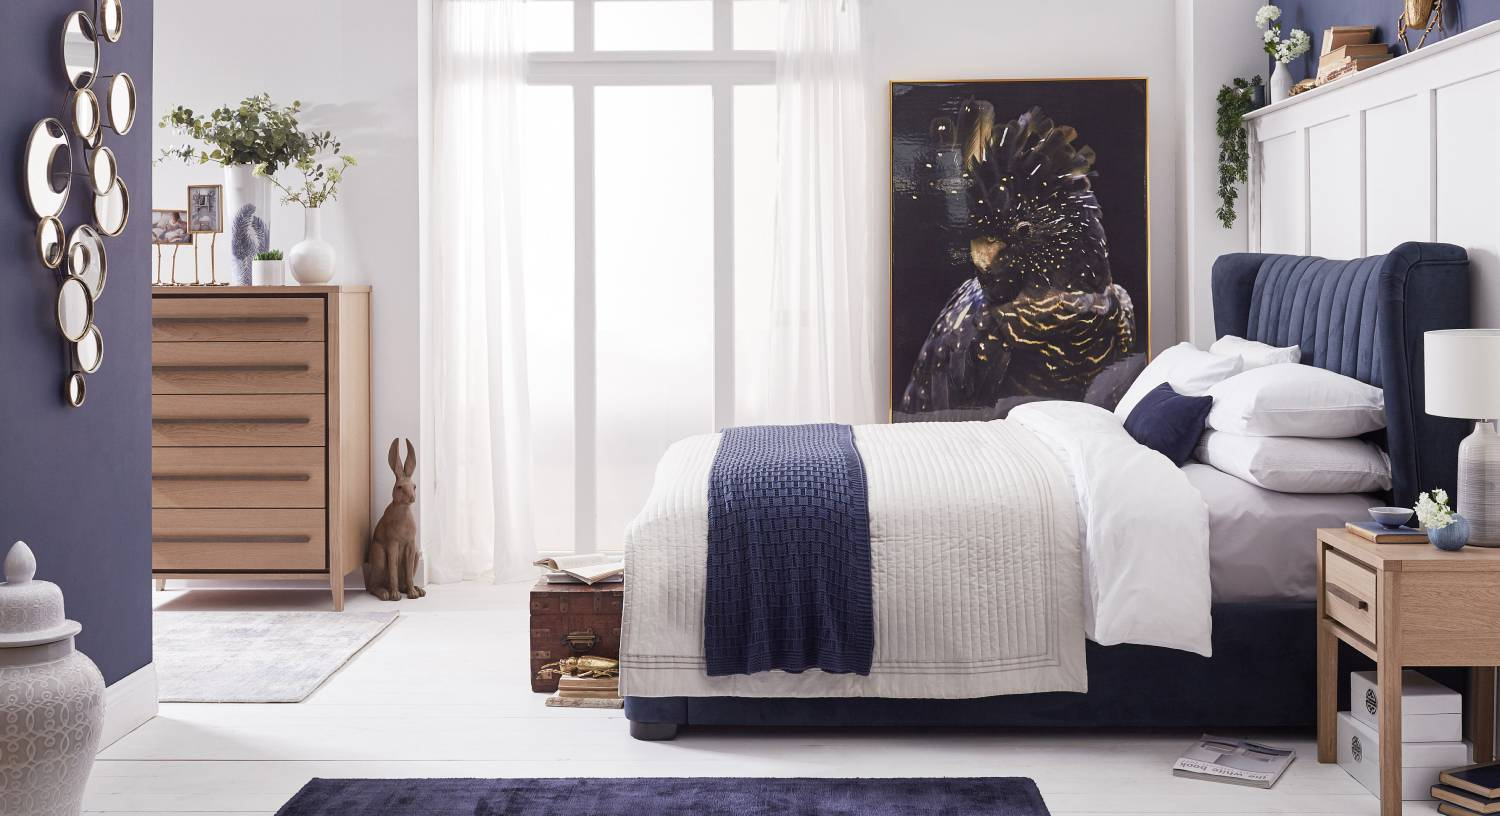 Bedroom bliss: Here's how to create a bedroom haven